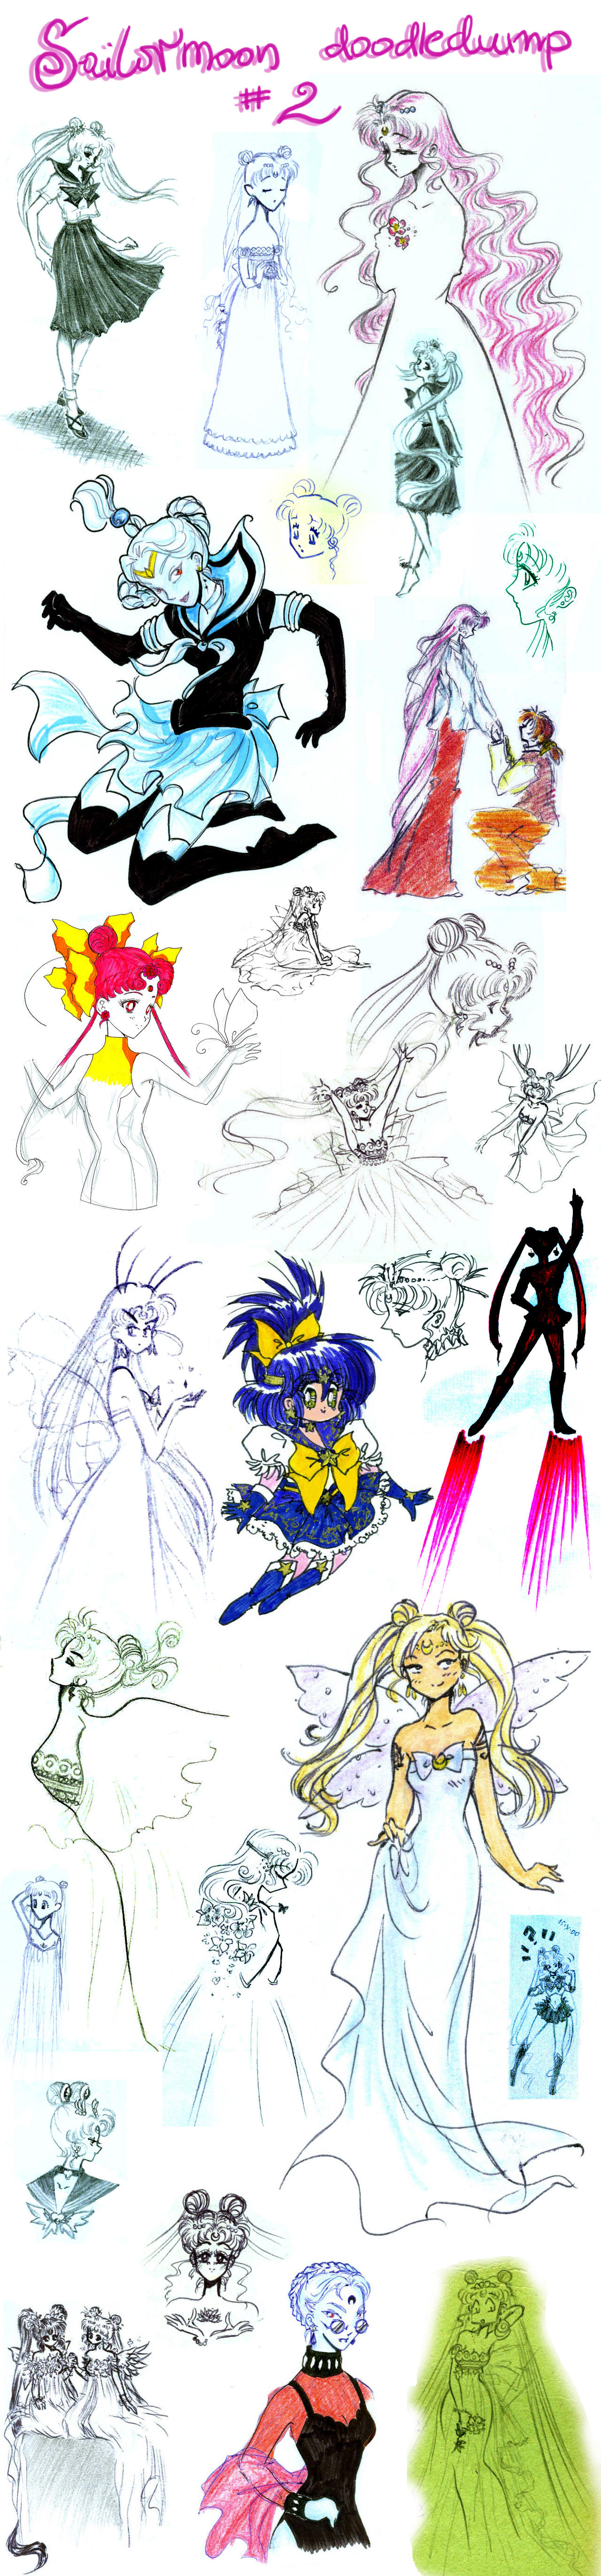 Sailormoon doodledump 2 by NitroFieja